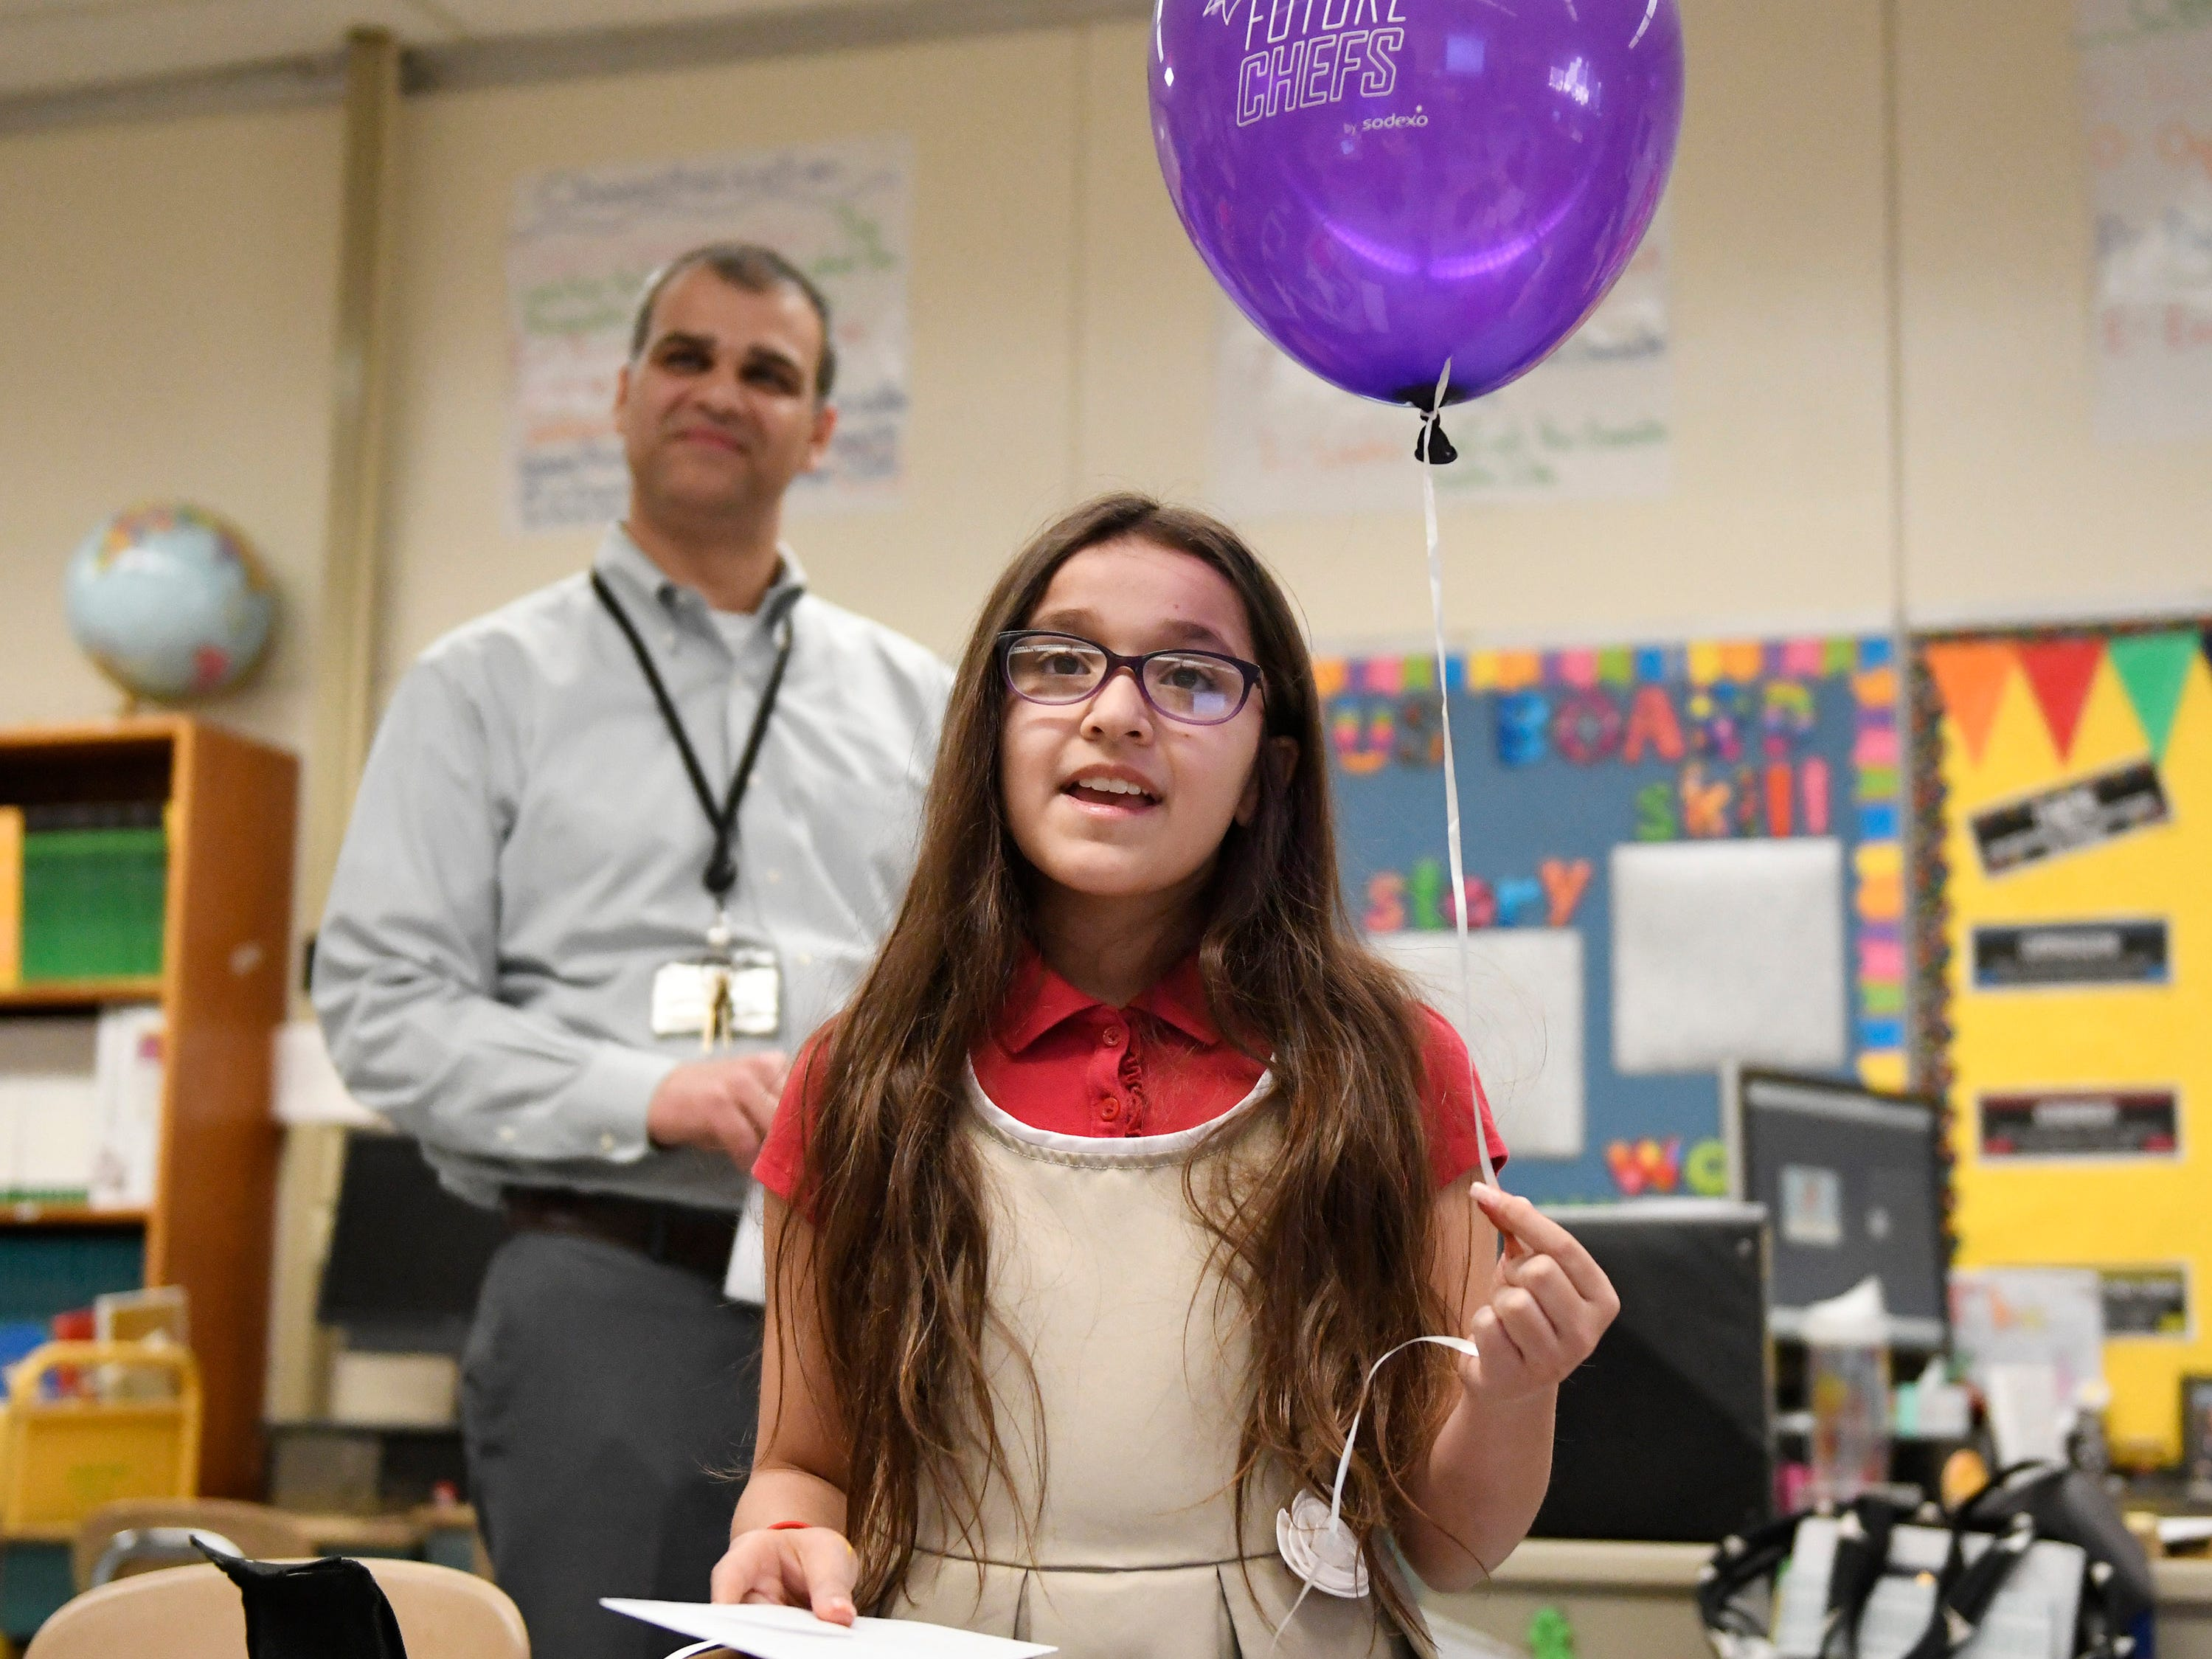 Purvesh Patel, the school district's director of food service, announced McKenzie Broyles, a fifth-grader at Durand Elementary School, as a finalist for the upcoming Future Chef competition sponsored by Sodexo.